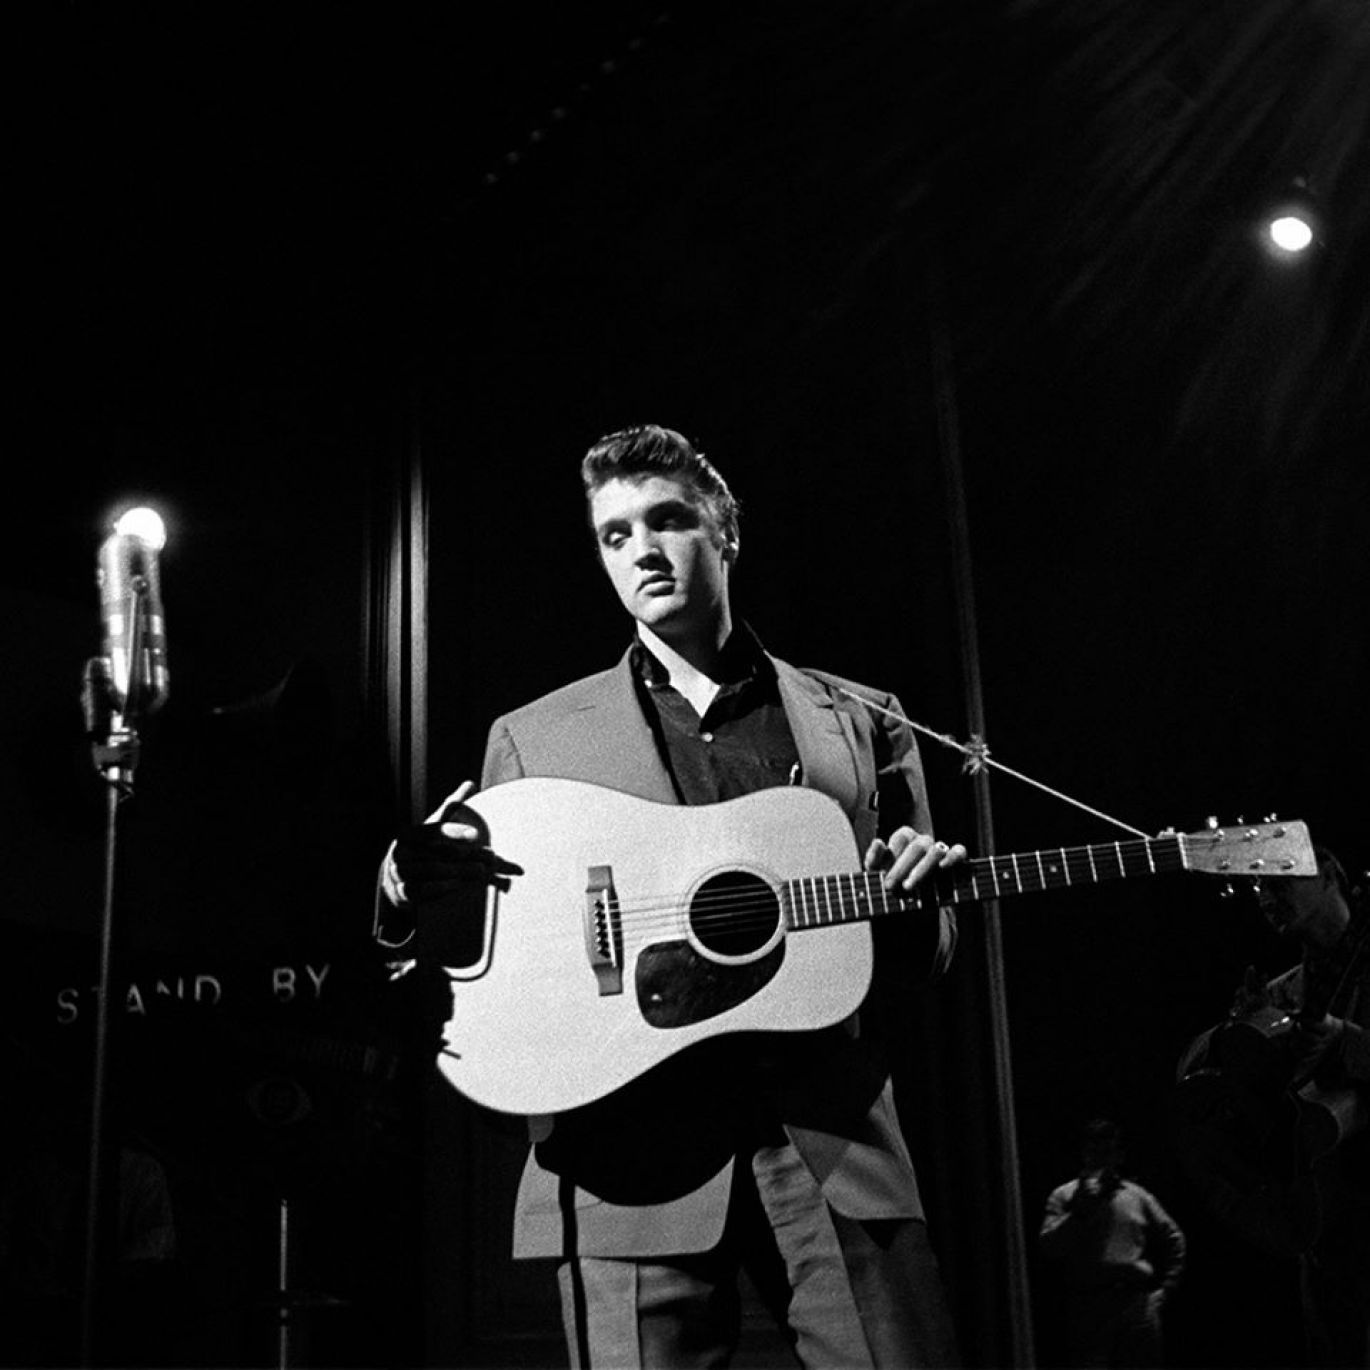 """Elvis Presley photographed by freelance photographer Alfred Wertheimer rehearsing at CBS-TV studio 50 in New York City on Saturday, March 17, 1956. He was going to perform for the fifth time on the Dorsey Brothers """"Stage Show"""", singing """"Heartbreak Hotel"""" and """"Blue Suede Shoes""""."""